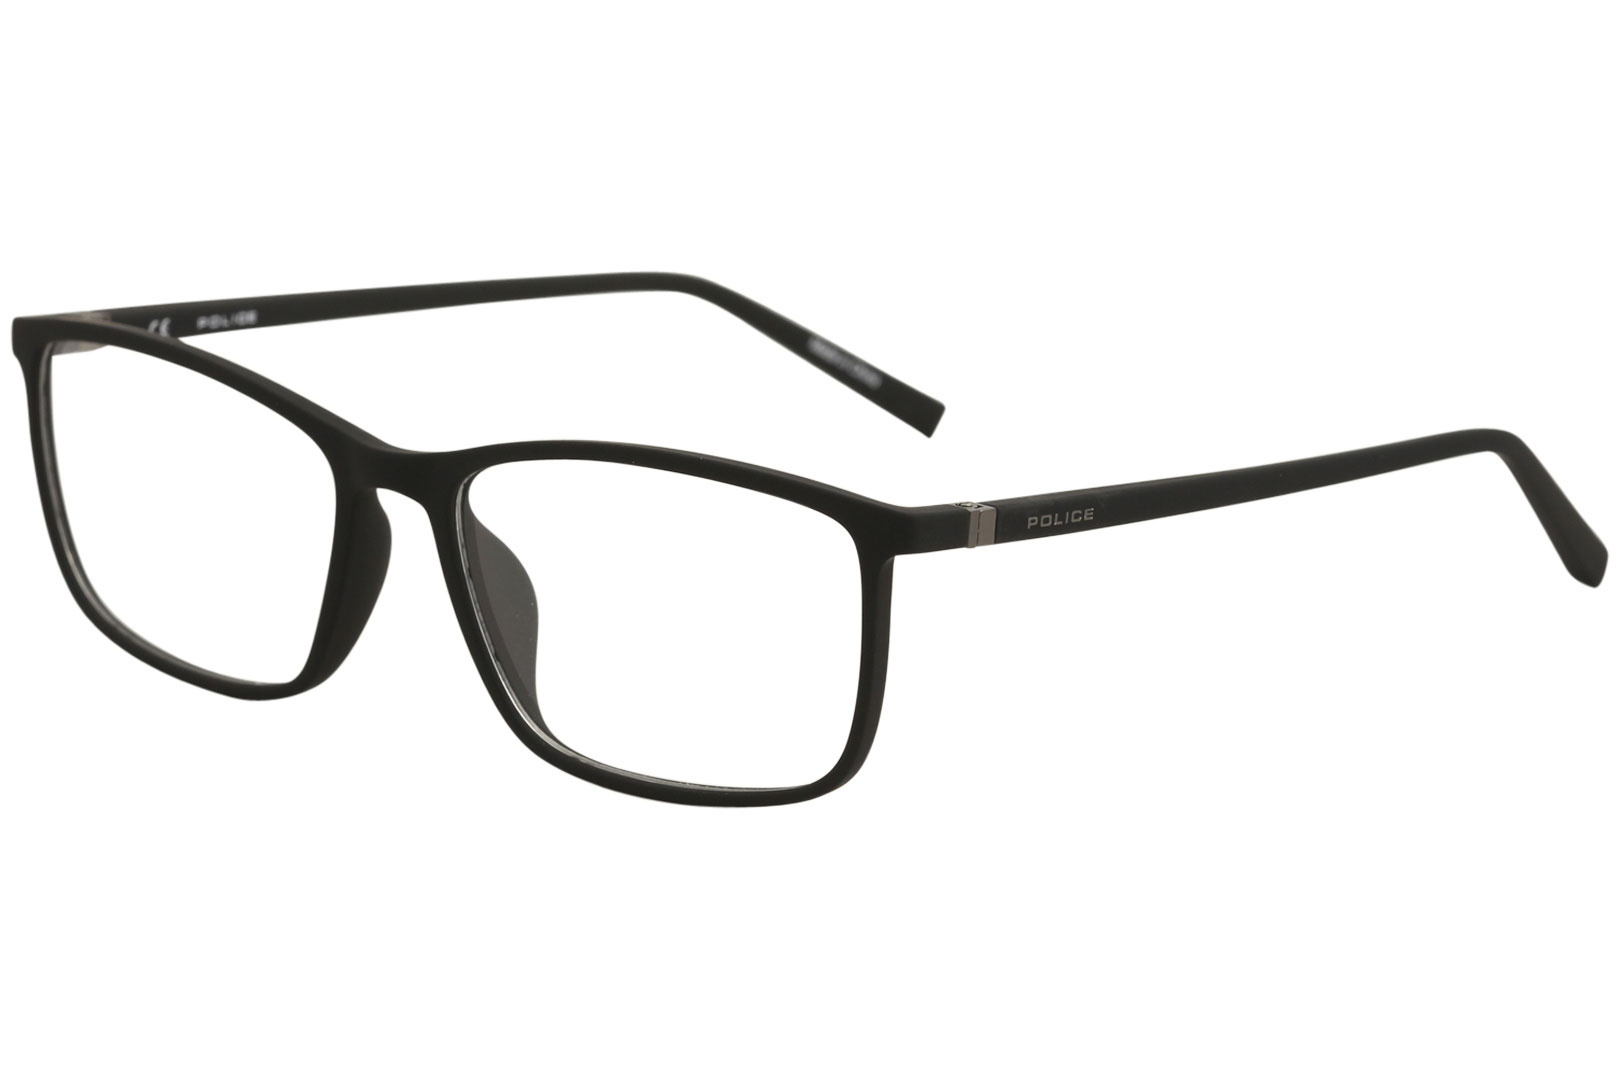 2b3a1bd35c Police Eyeglasses Perception 6 VPL255 255 06AA Black Rubber Optical ...